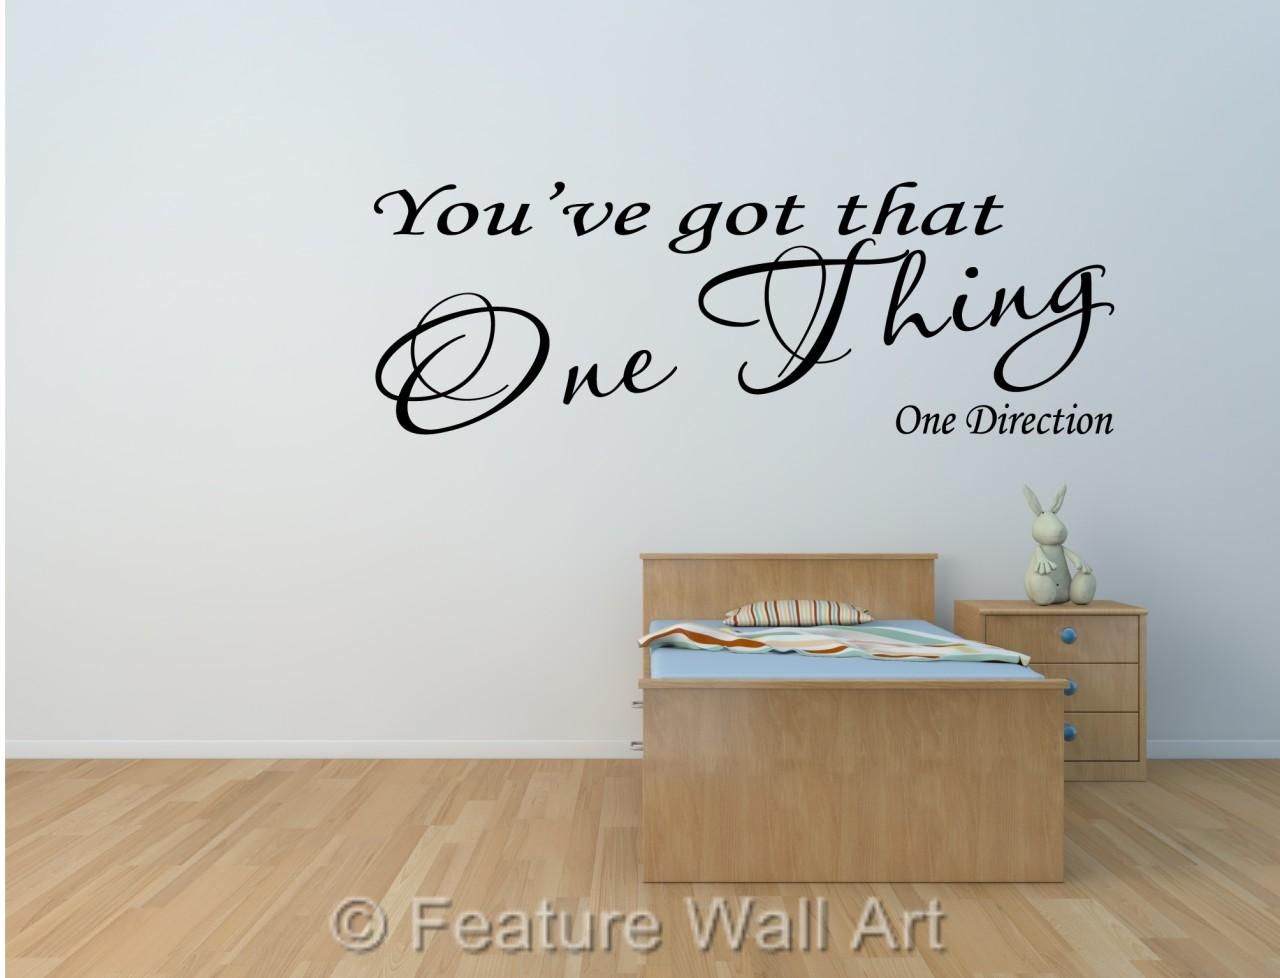 Wall Art Stickers Song Lyrics : One direction you ve got that thing song lyrics